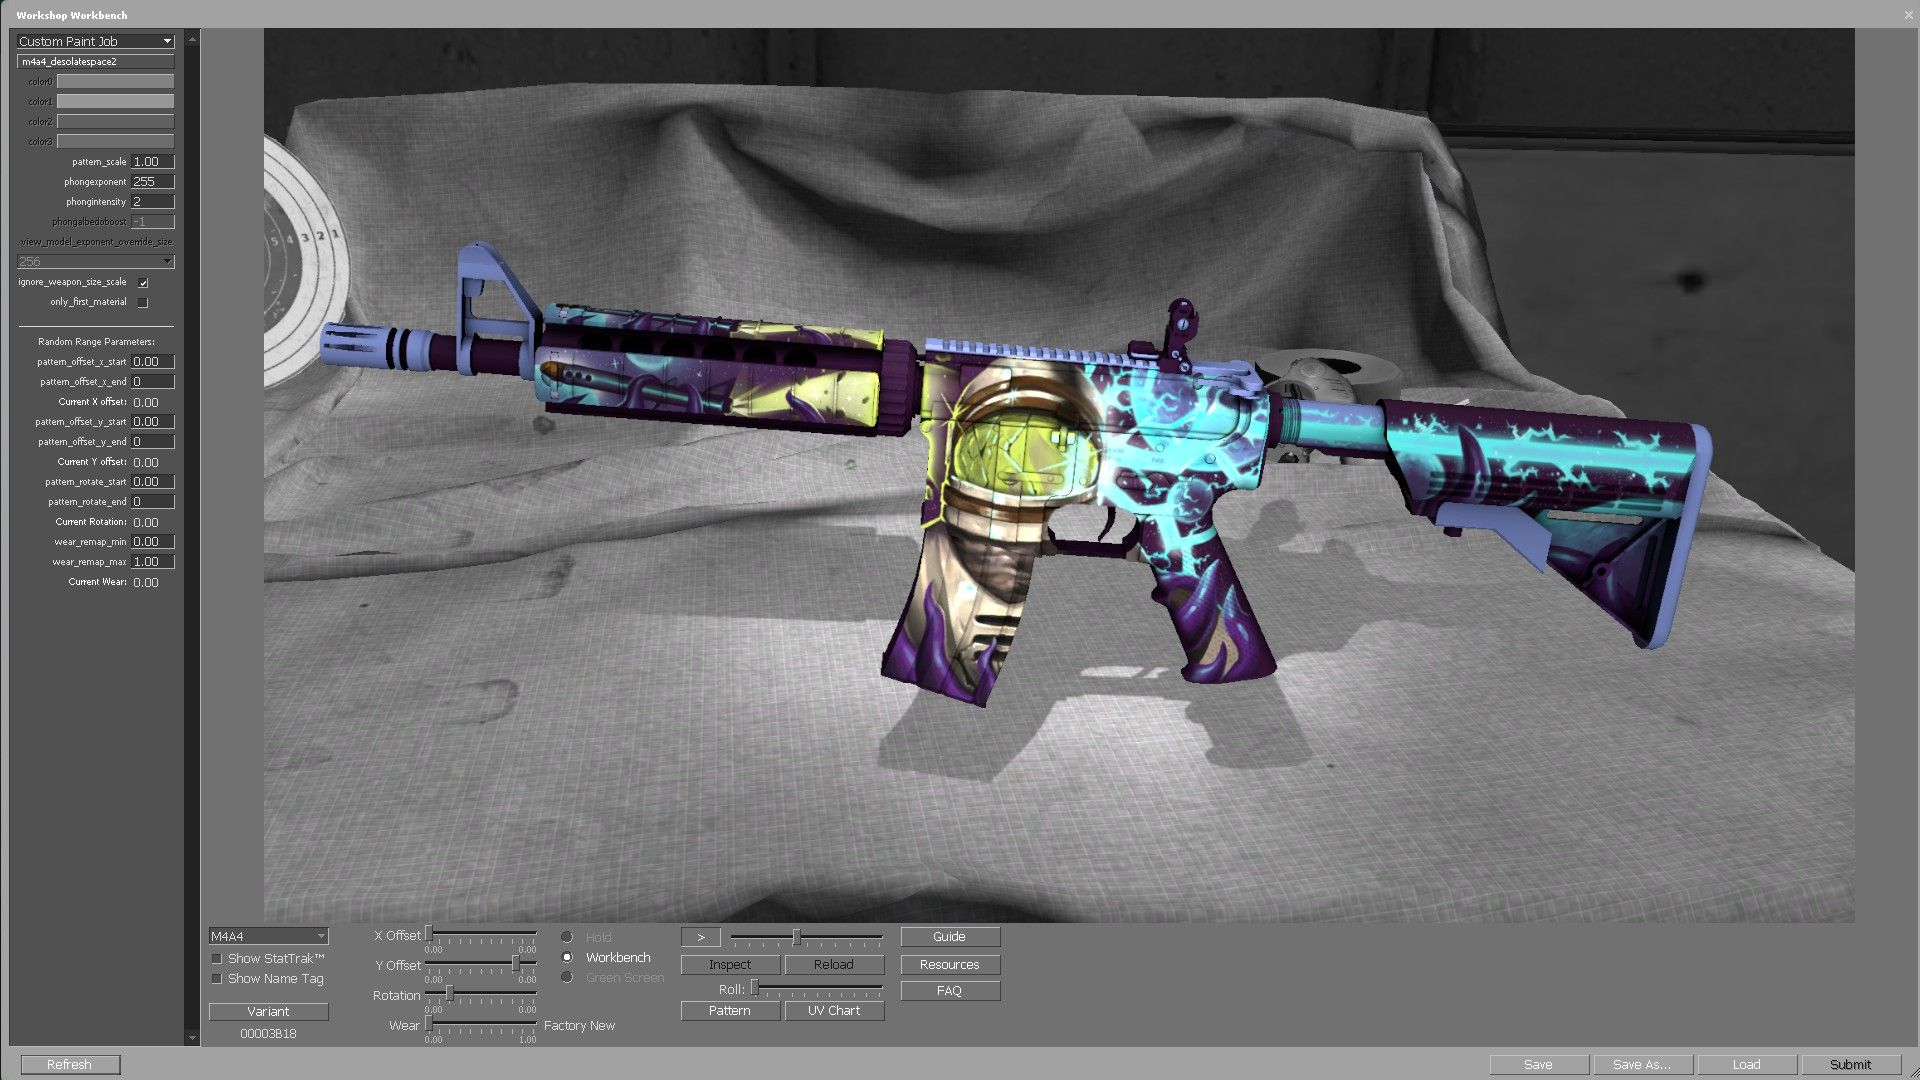 I Extracted All The Current Perfect World Skins China That Are In The Game Files Pretty Interesting Games Globaloffensive Perfect World Perfection Skin